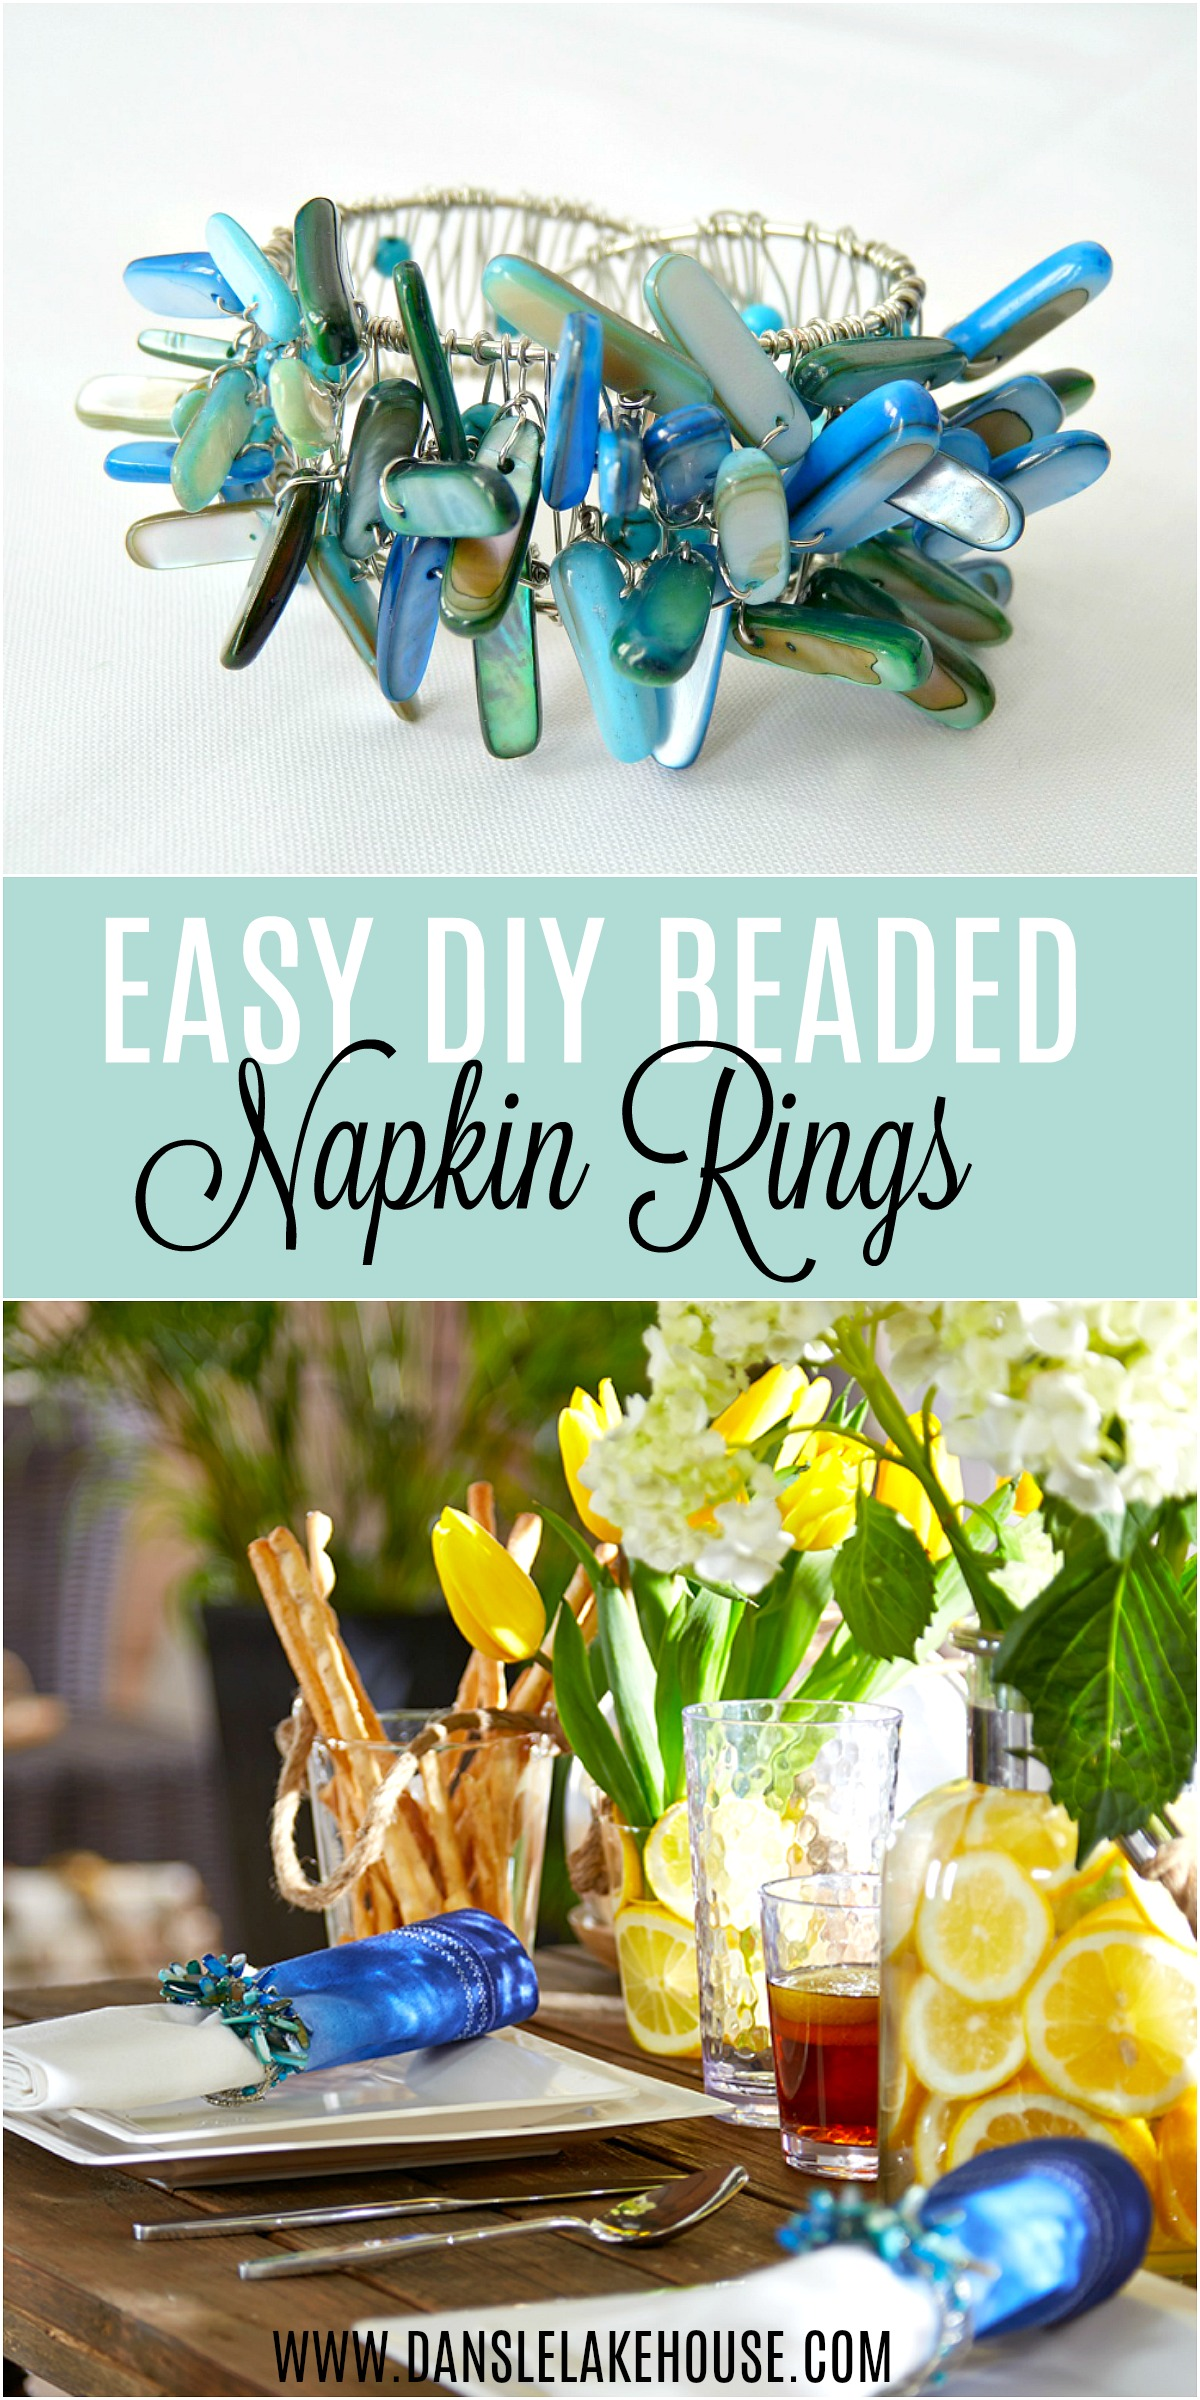 DIY Beaded Napkin Ring - Easy Tutorial + Video